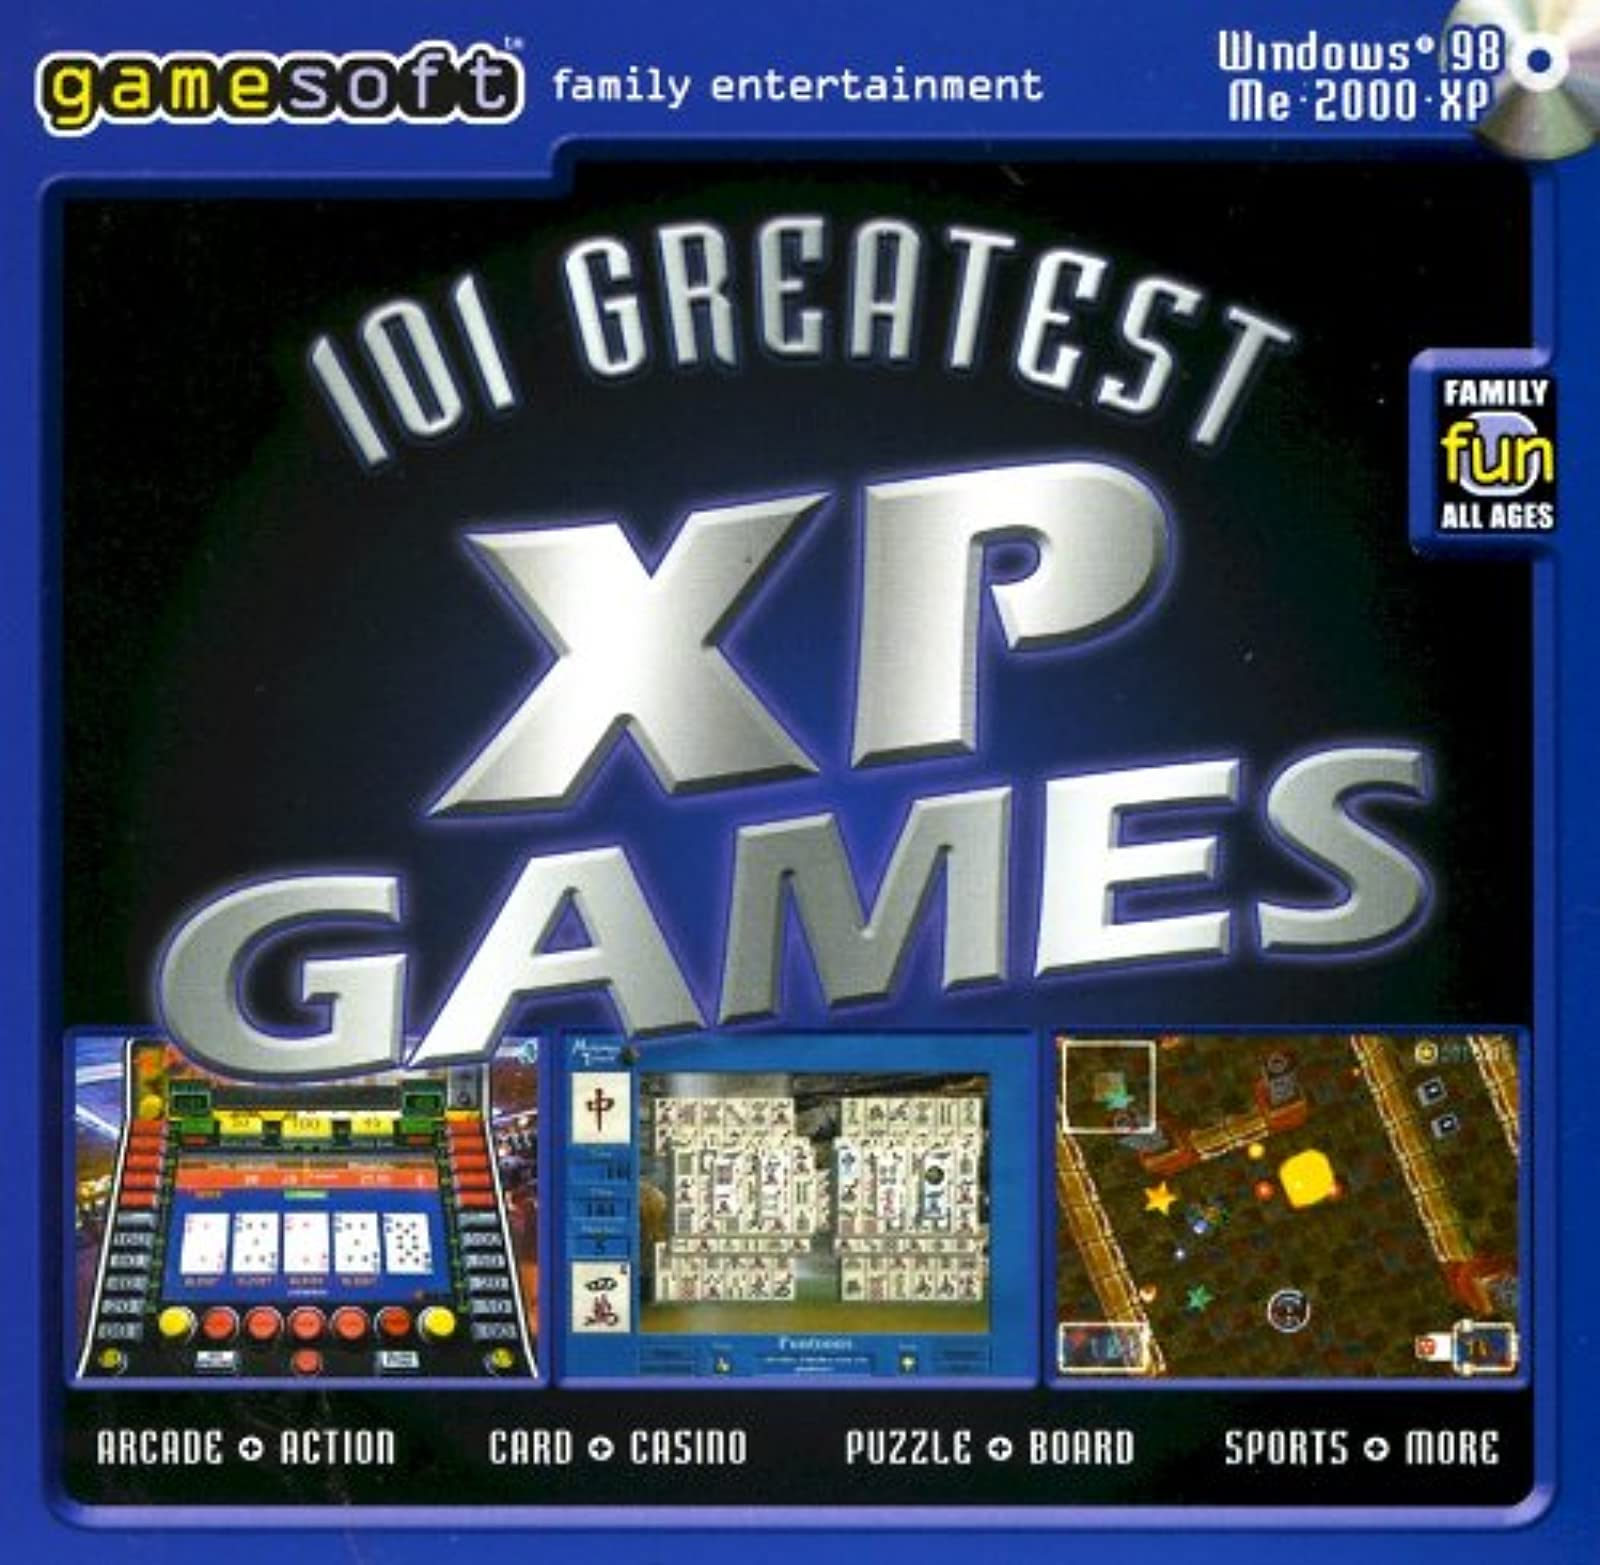 101 Greatest XP PC Games Vol 1 Software